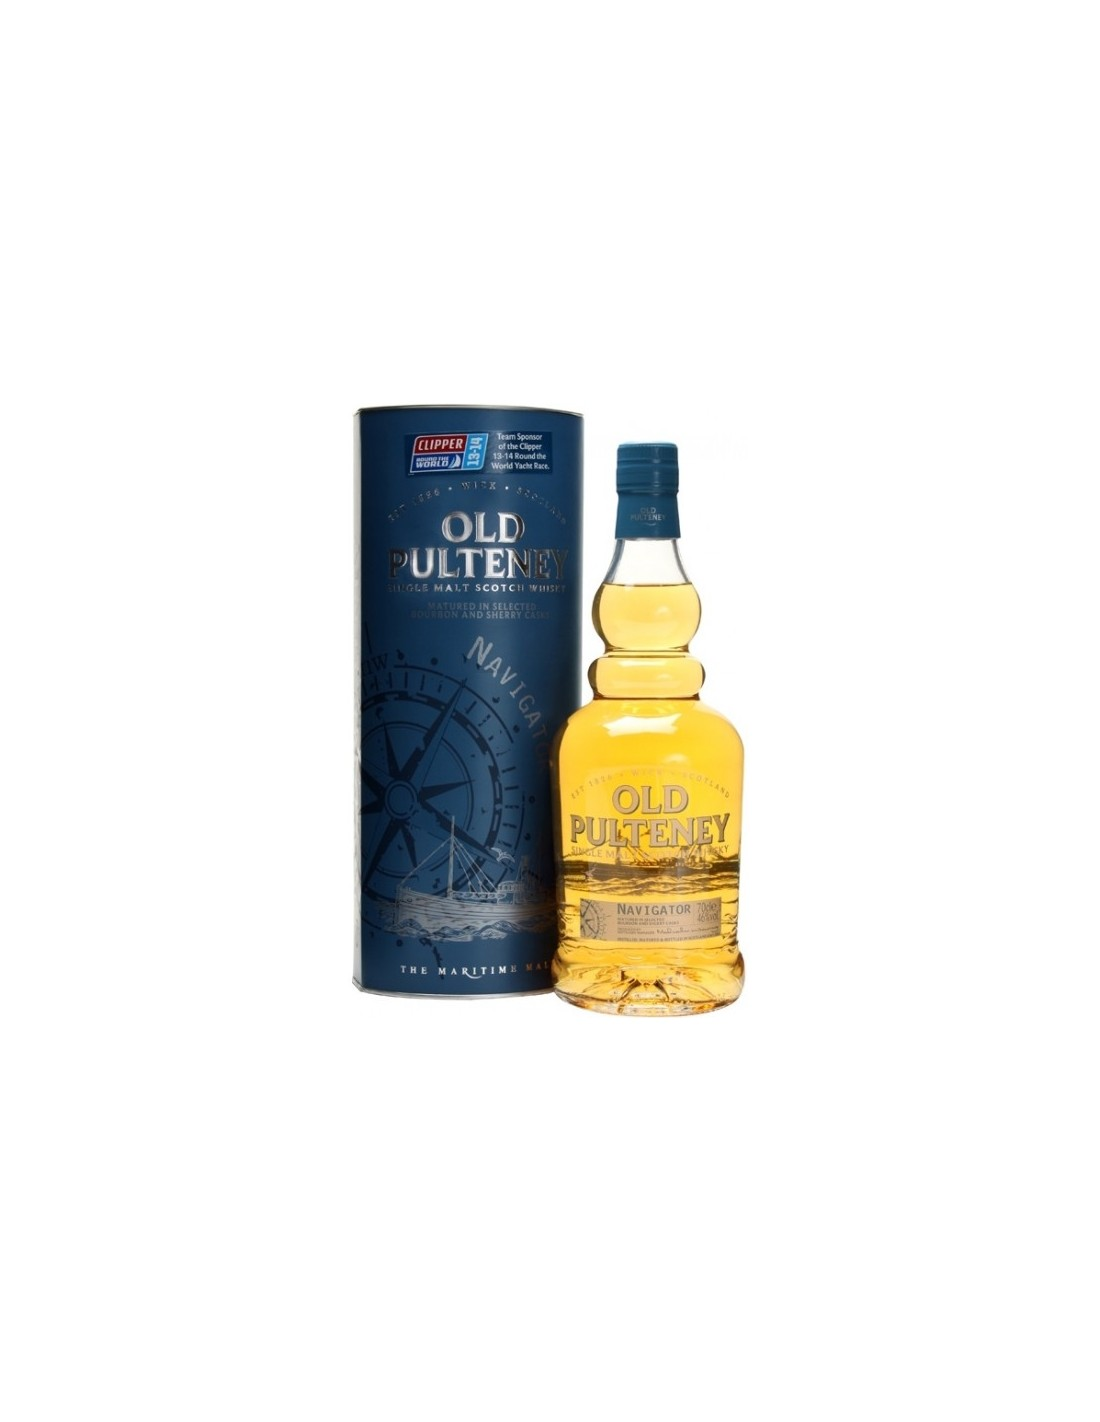 Whisky Old Pulteney Navigator, 46% alc., 0.7L, Scotia